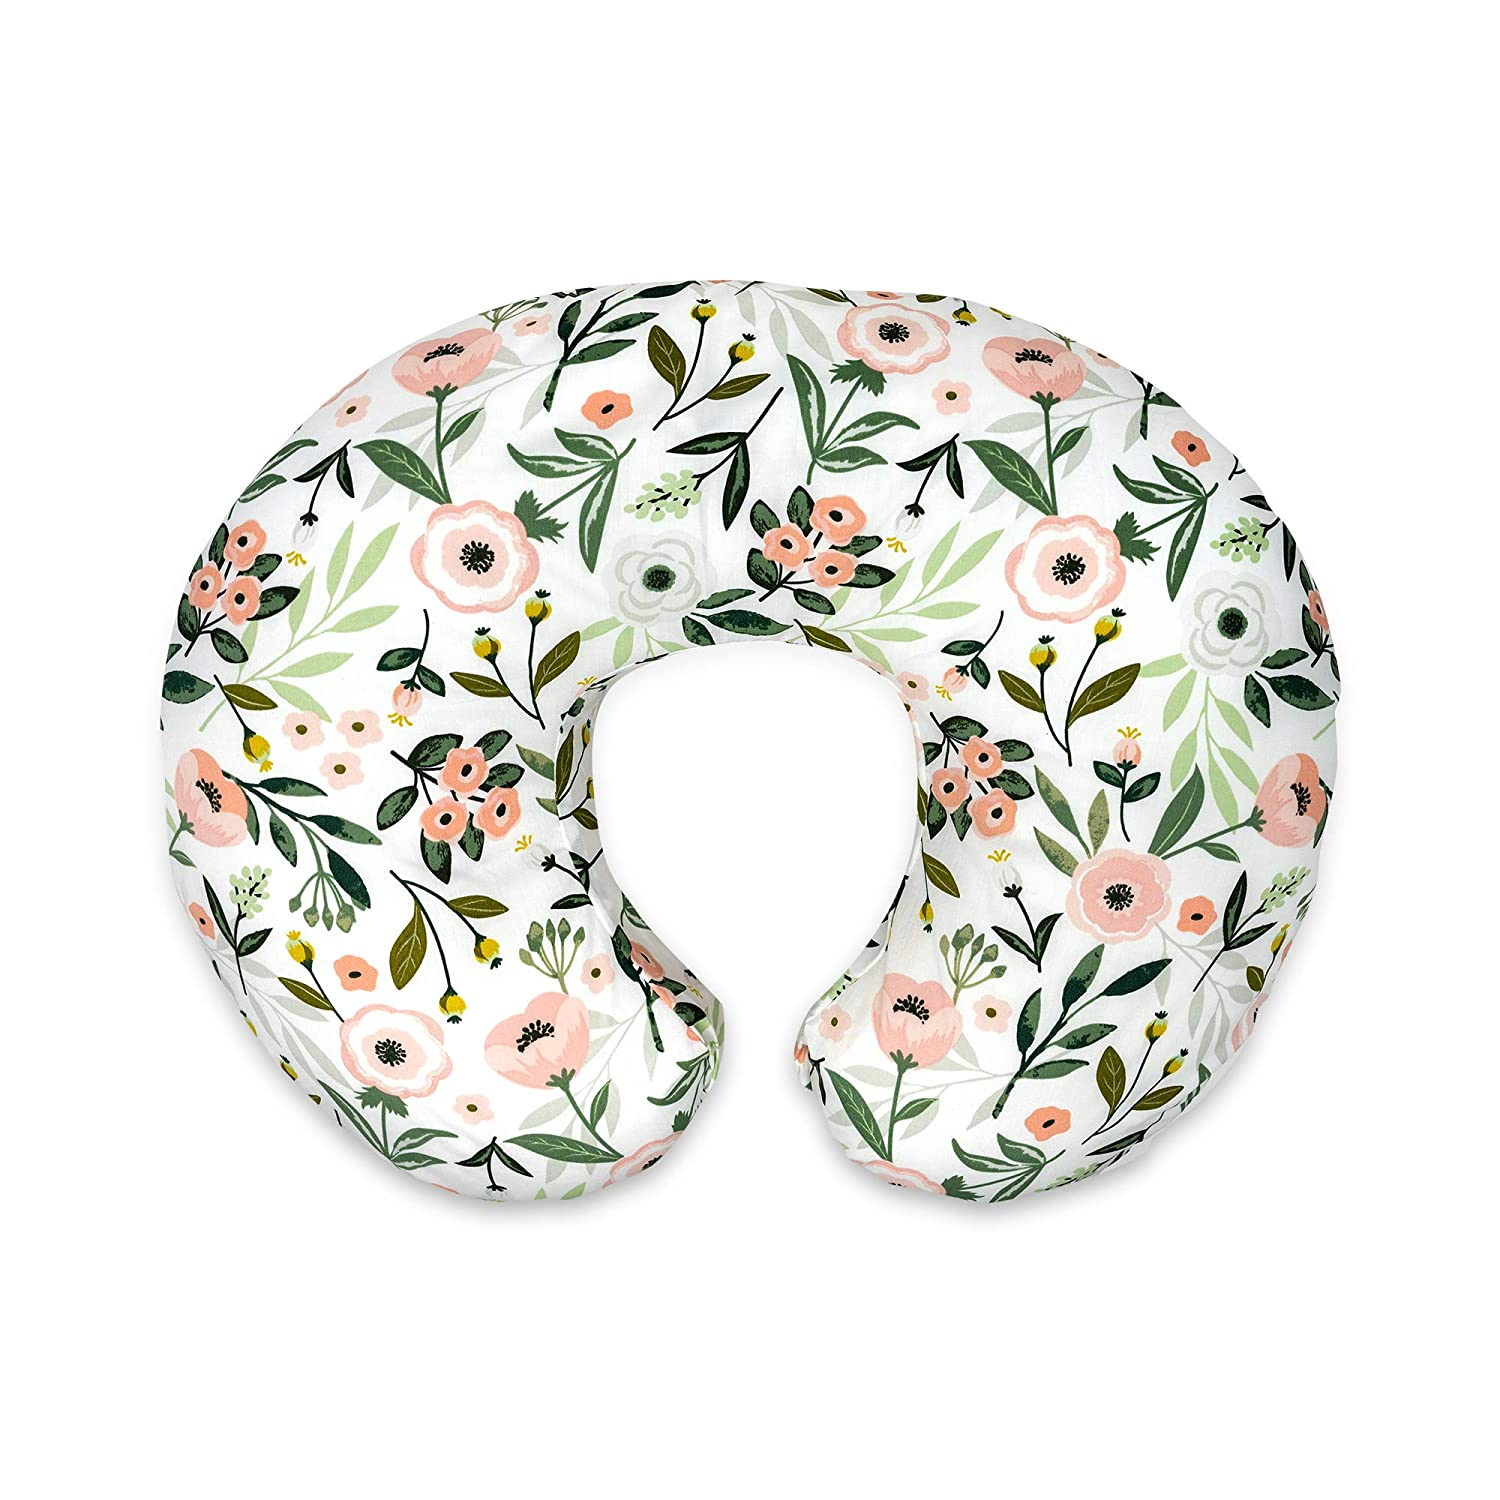 Boppy Nursing Pillow and Positioner—Original   Pink Garden Flowers   Breastfeeding, Bottle Feeding, Baby Support   with Removable Cotton Blend Cover   Awake-Time Support